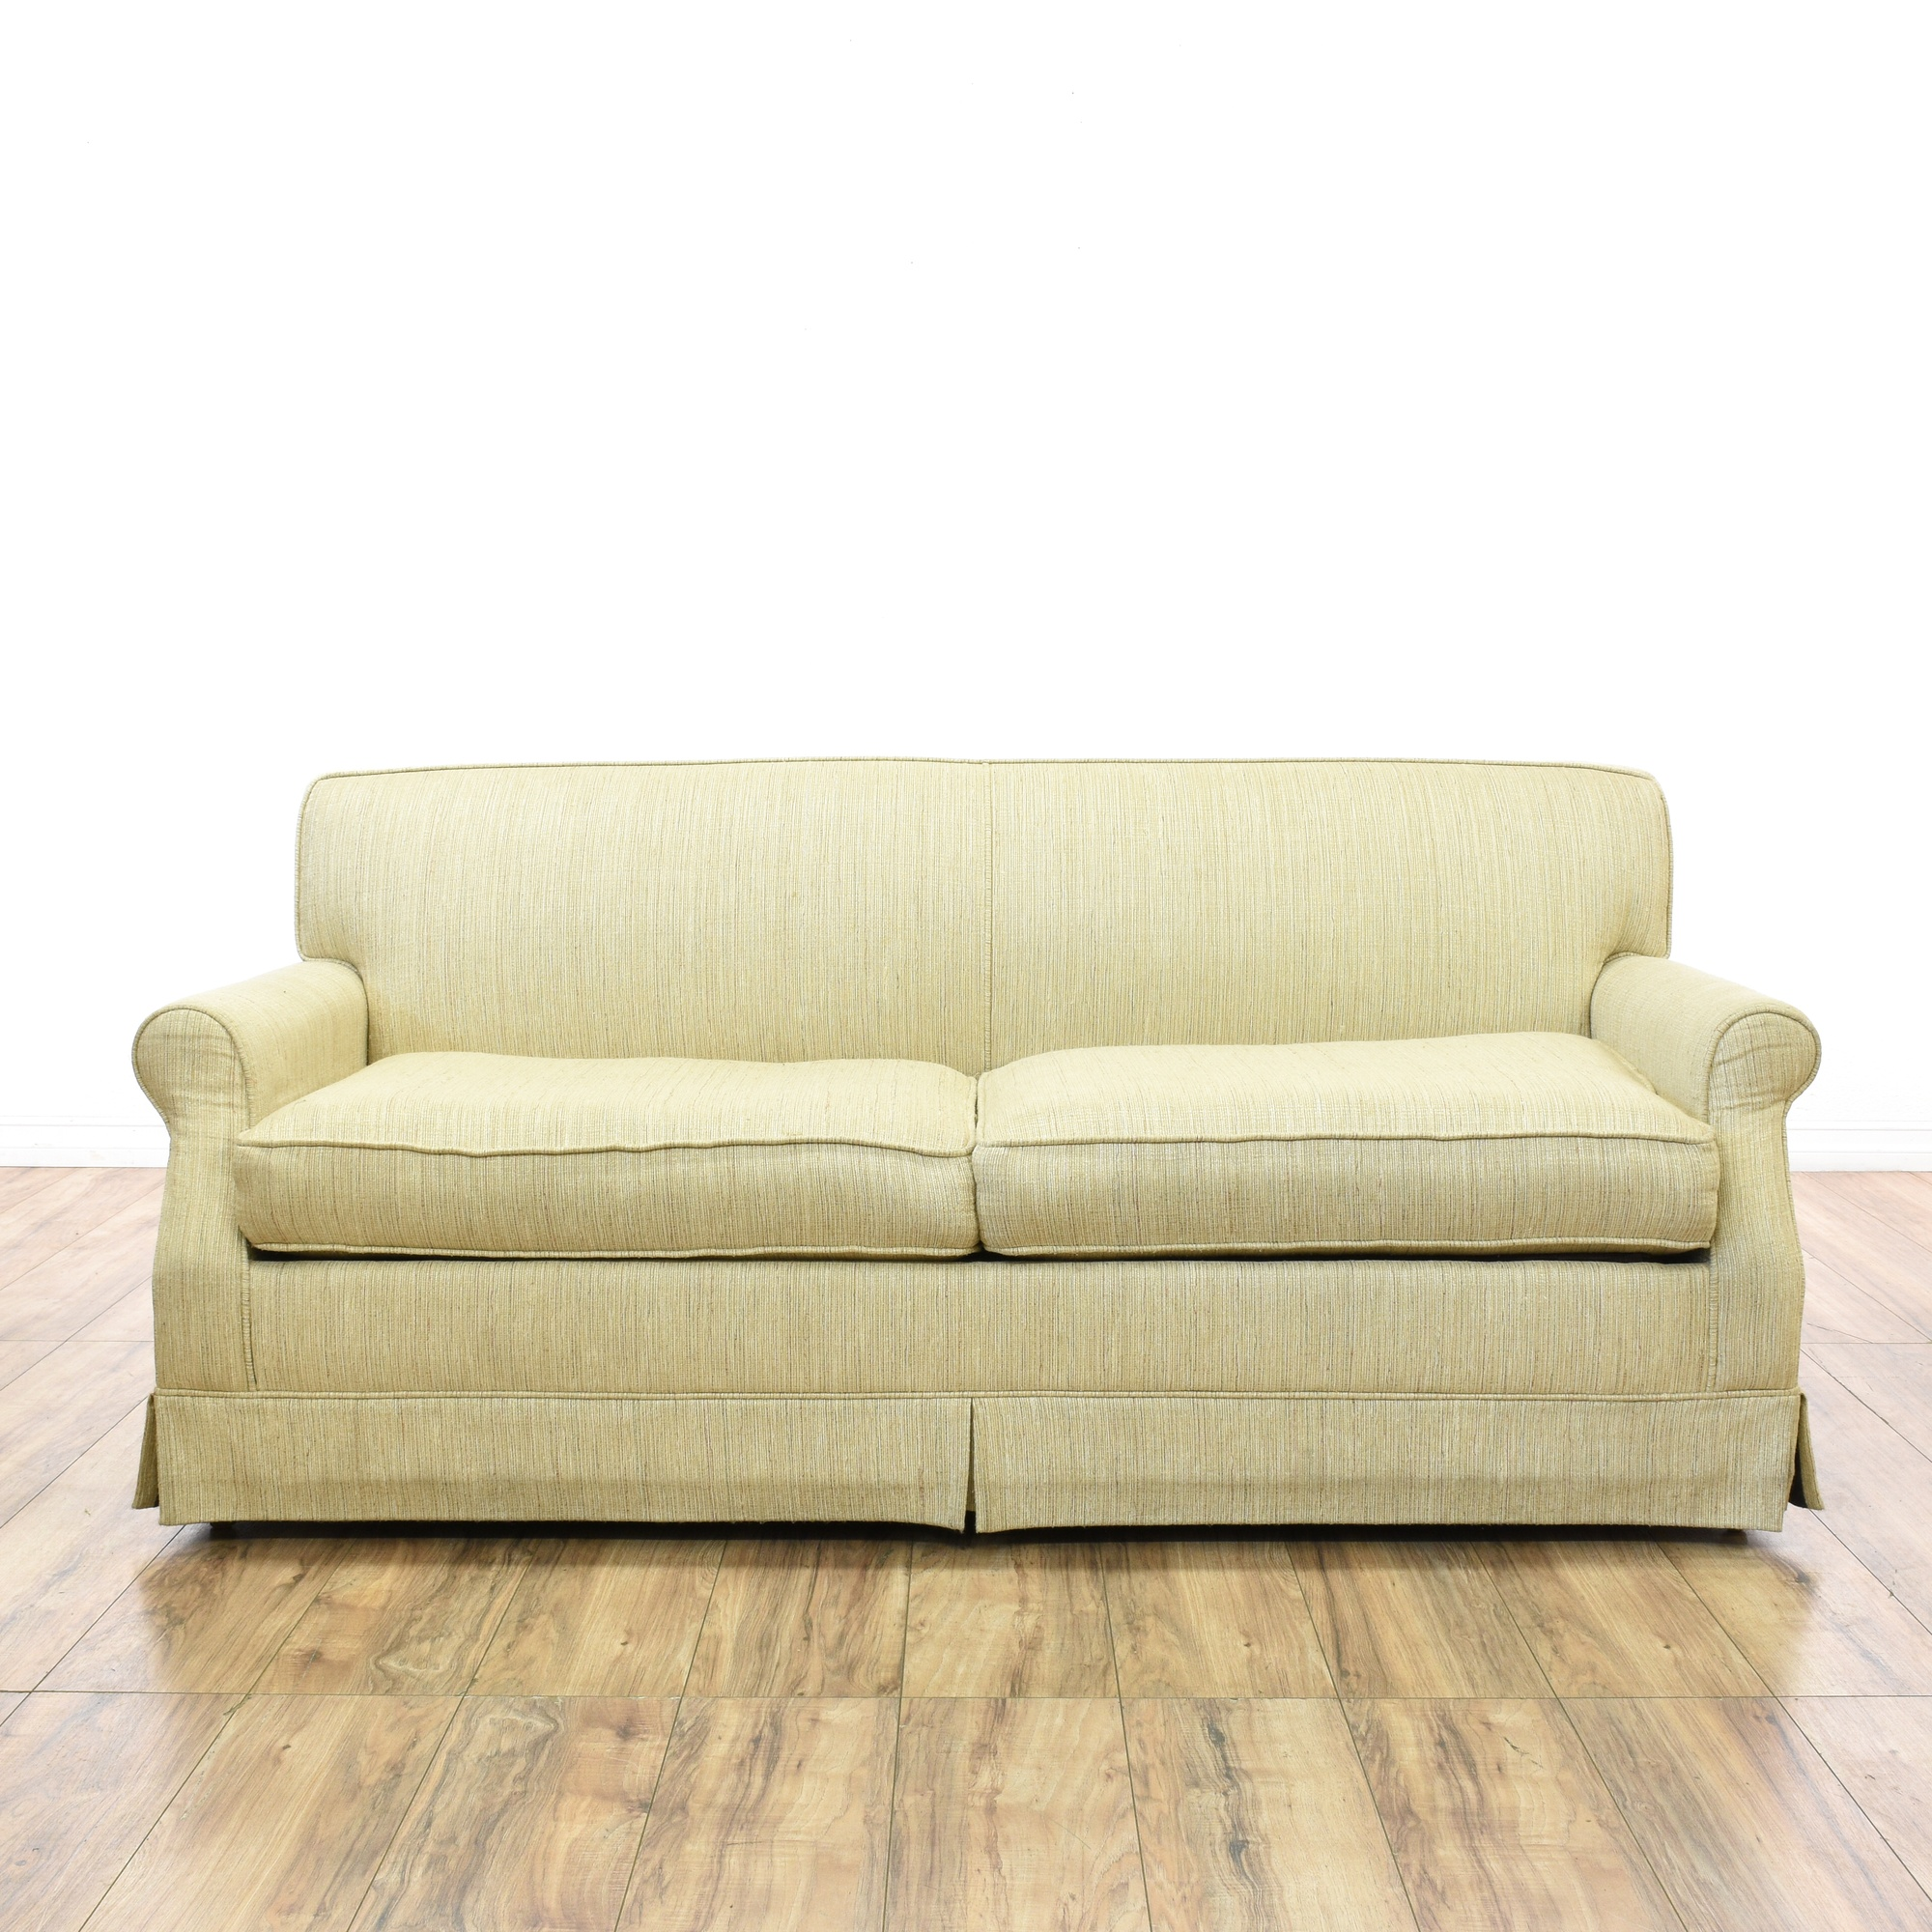 Woven beige upholstered sleeper sofa bed loveseat for Sofa bed los angeles